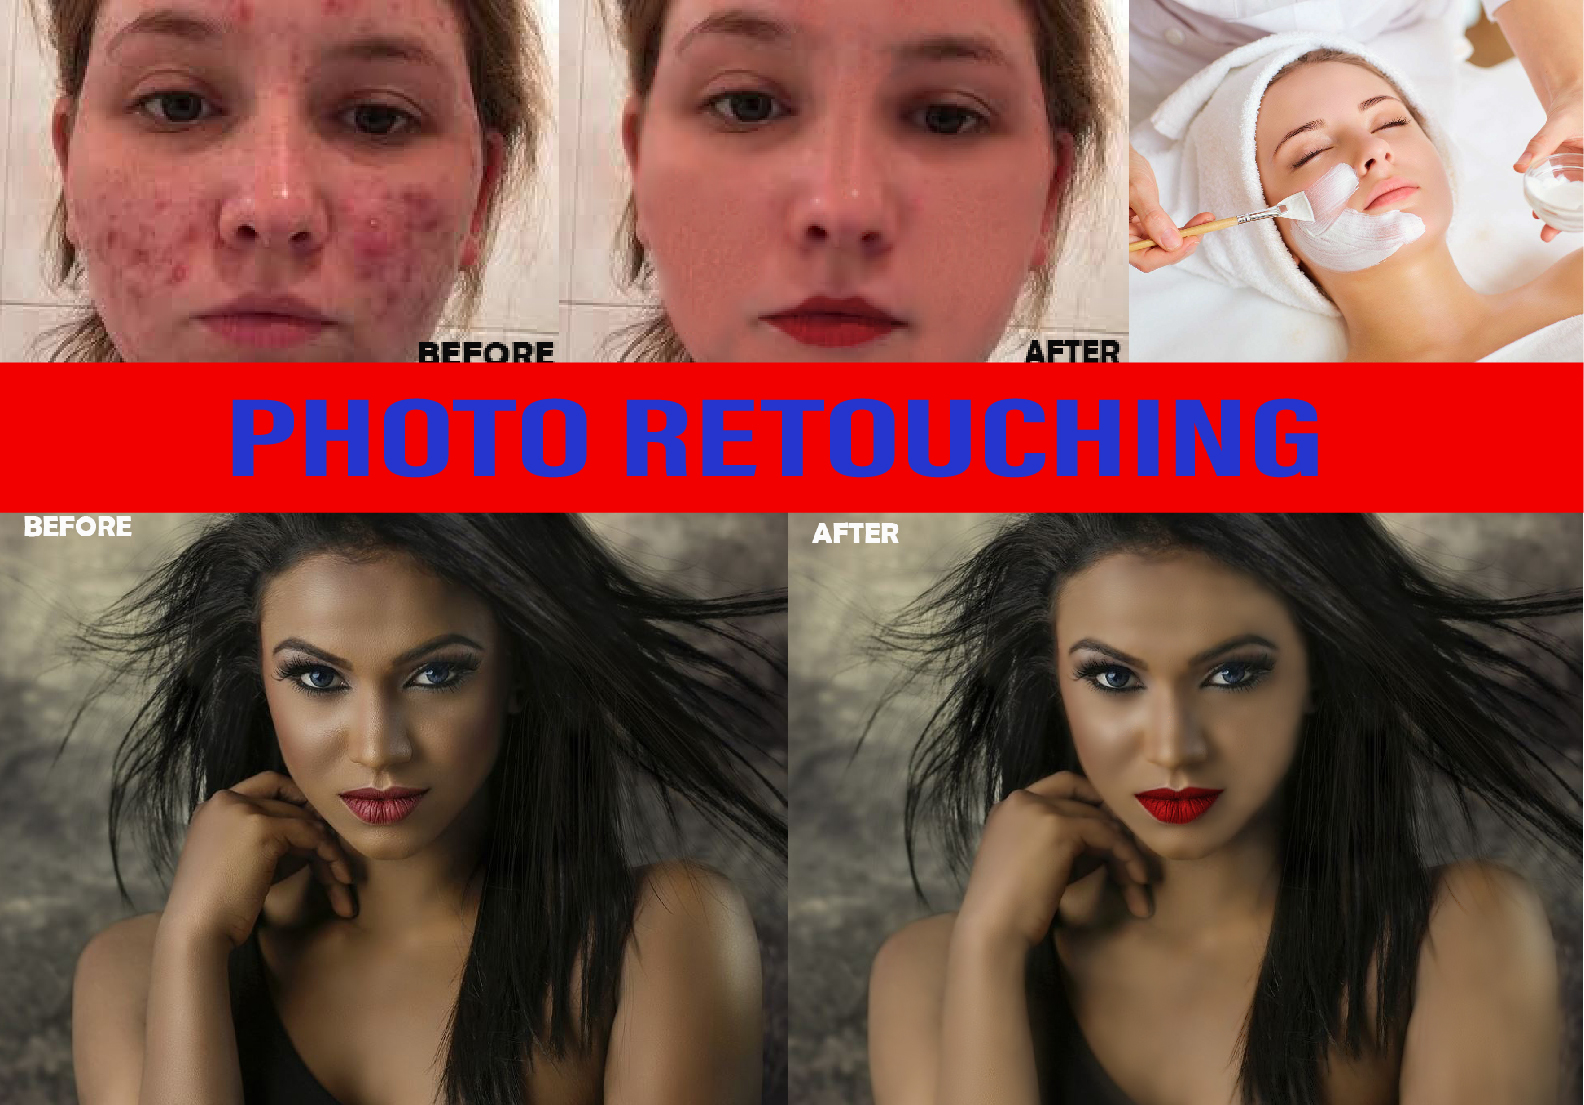 I will do photo retouch and image editing